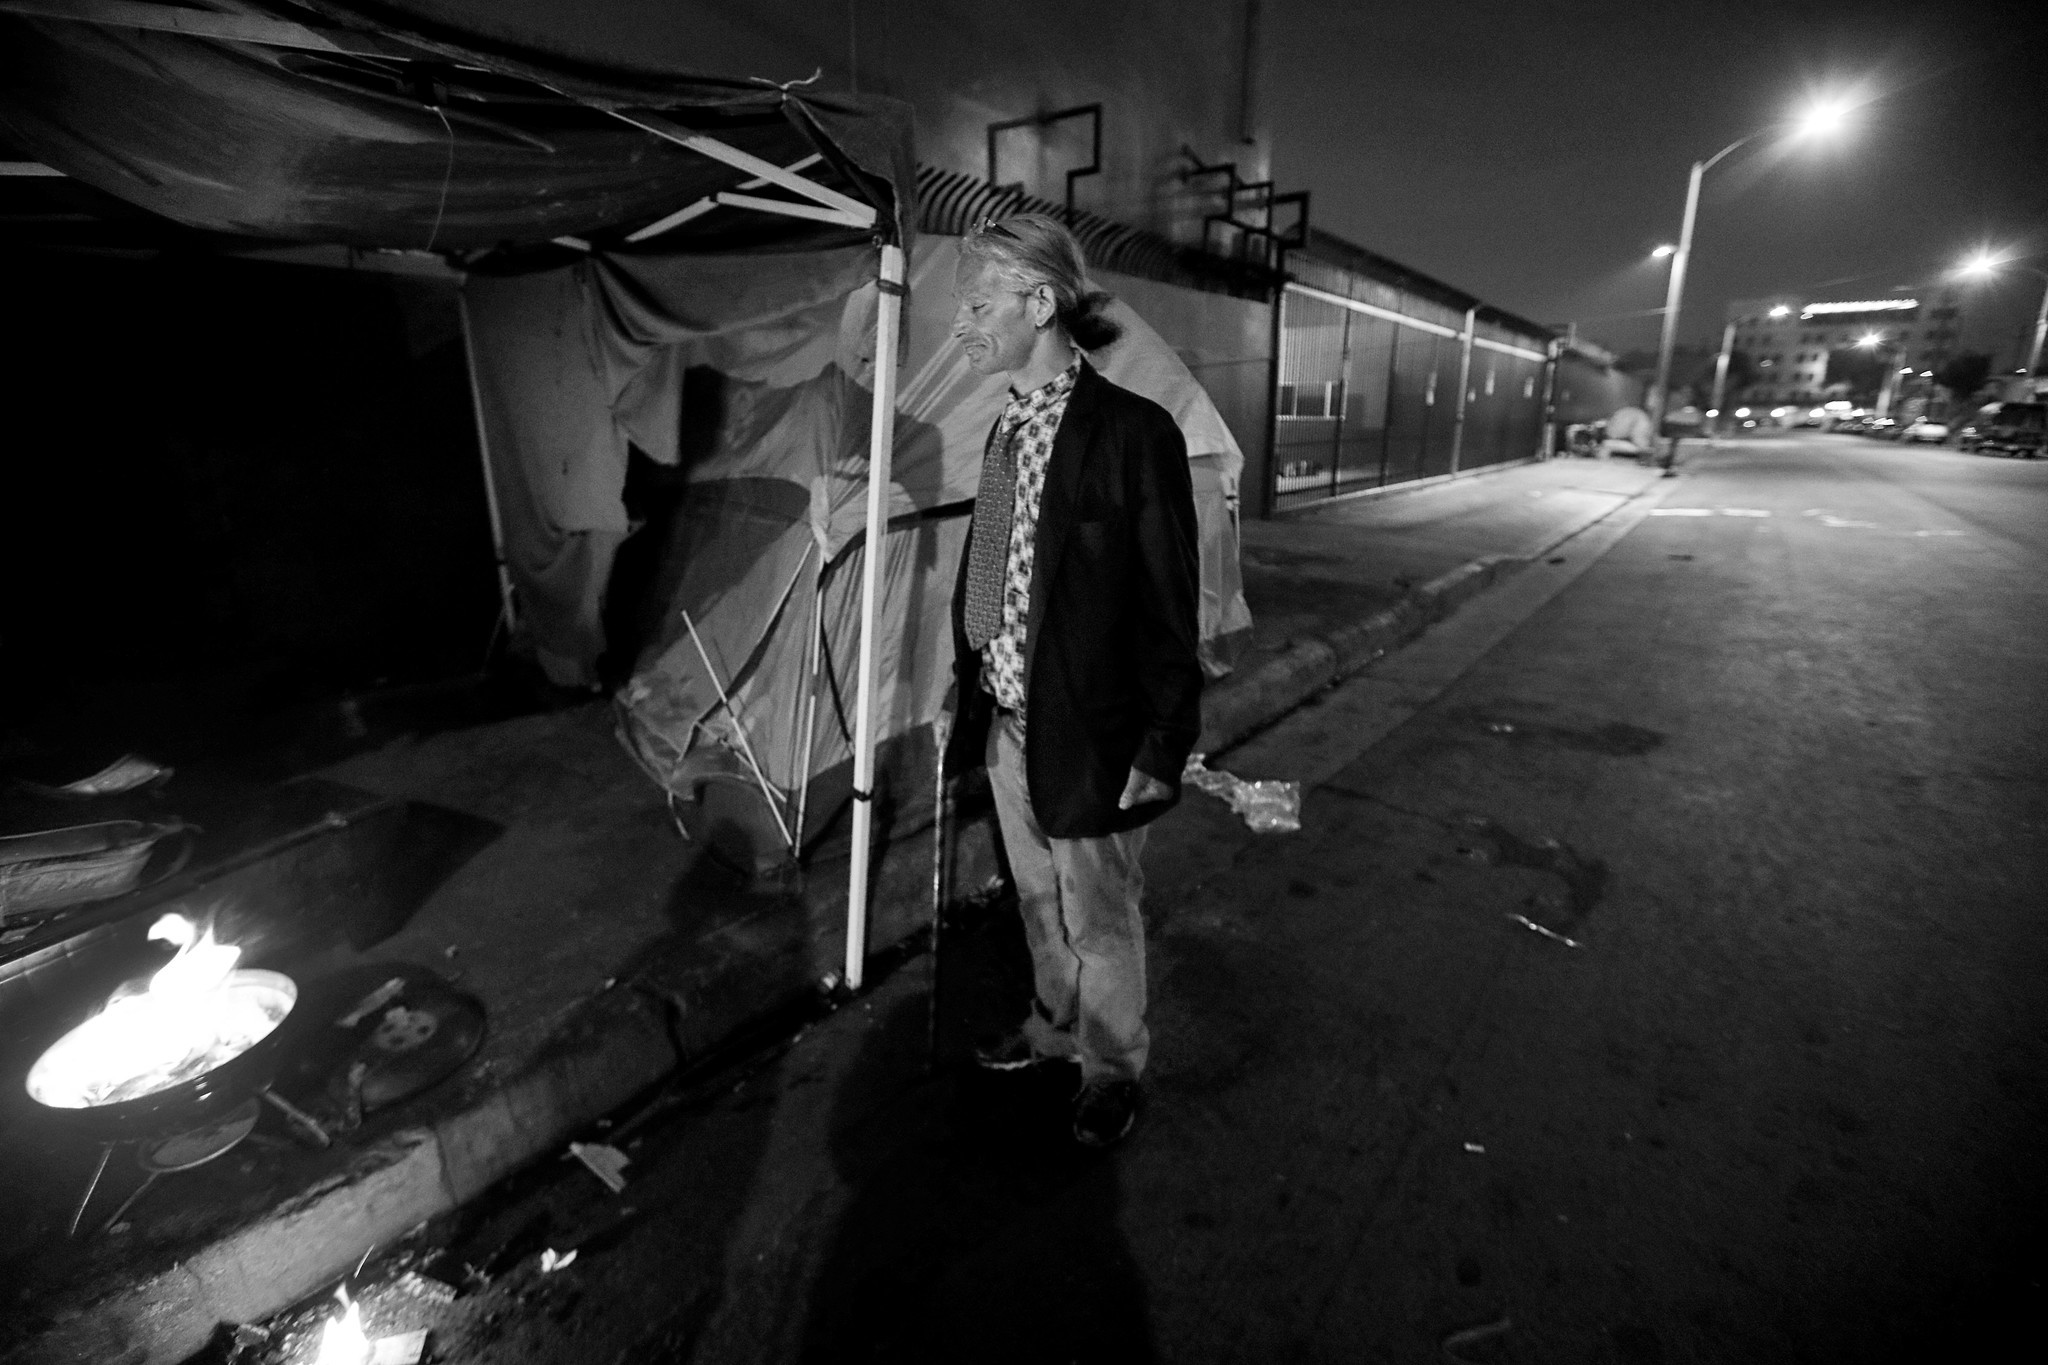 LOS ANGLES, CA FEBRUARY 2, 2018: Pre dawn - Cat hangs out joking around and talking with his chil